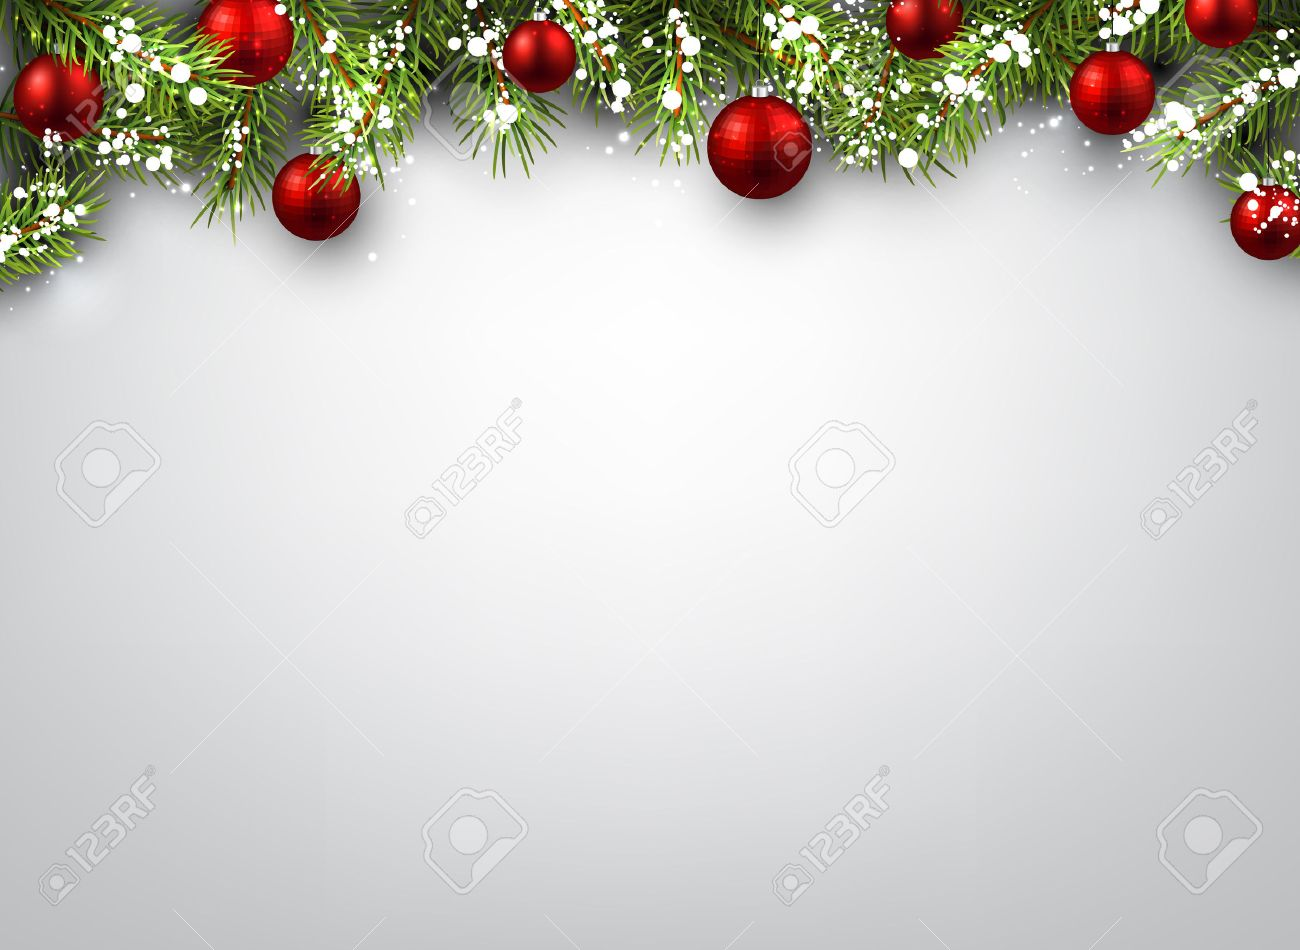 Christmas Background With Fir Branches And Red Balls Royalty 1300x950